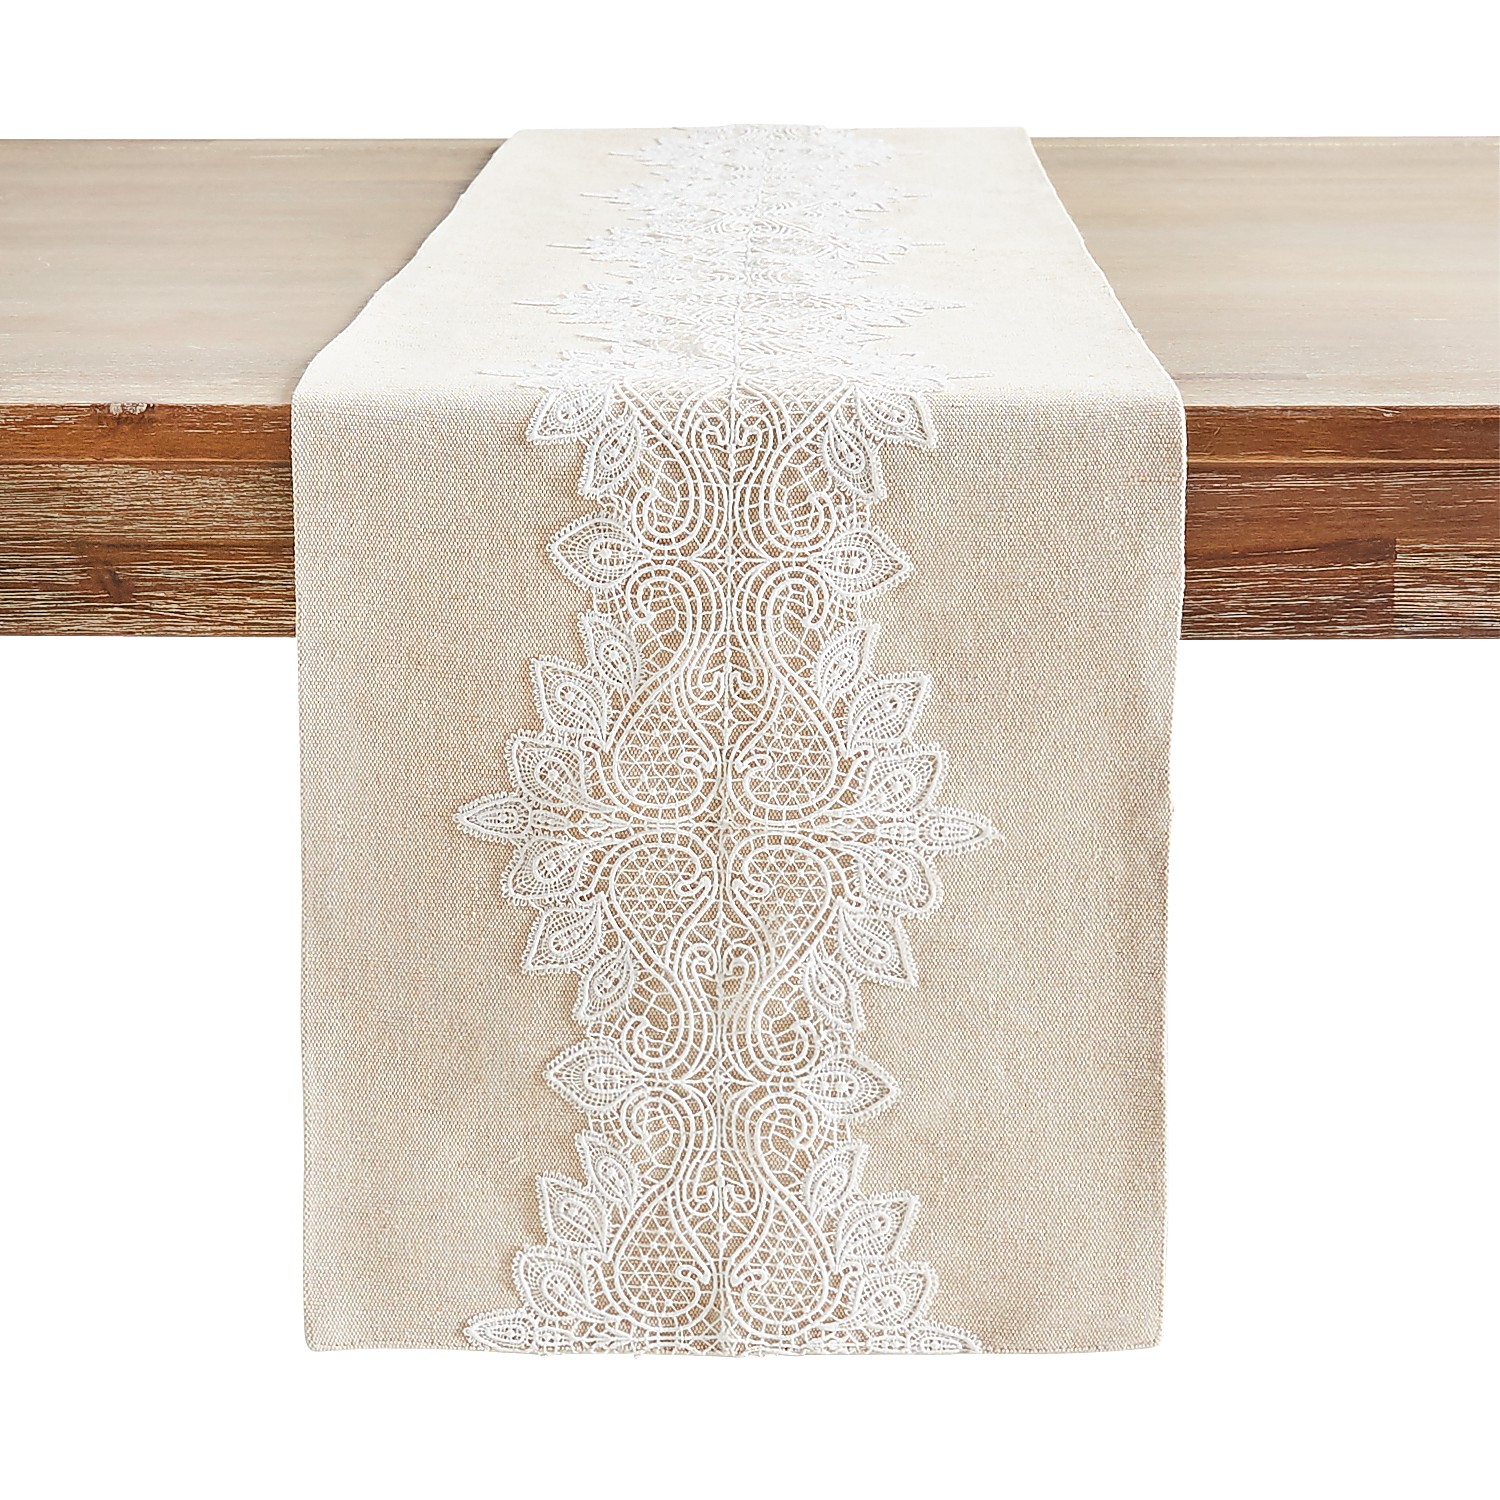 "72"" Embroidered Lace Table Runner"